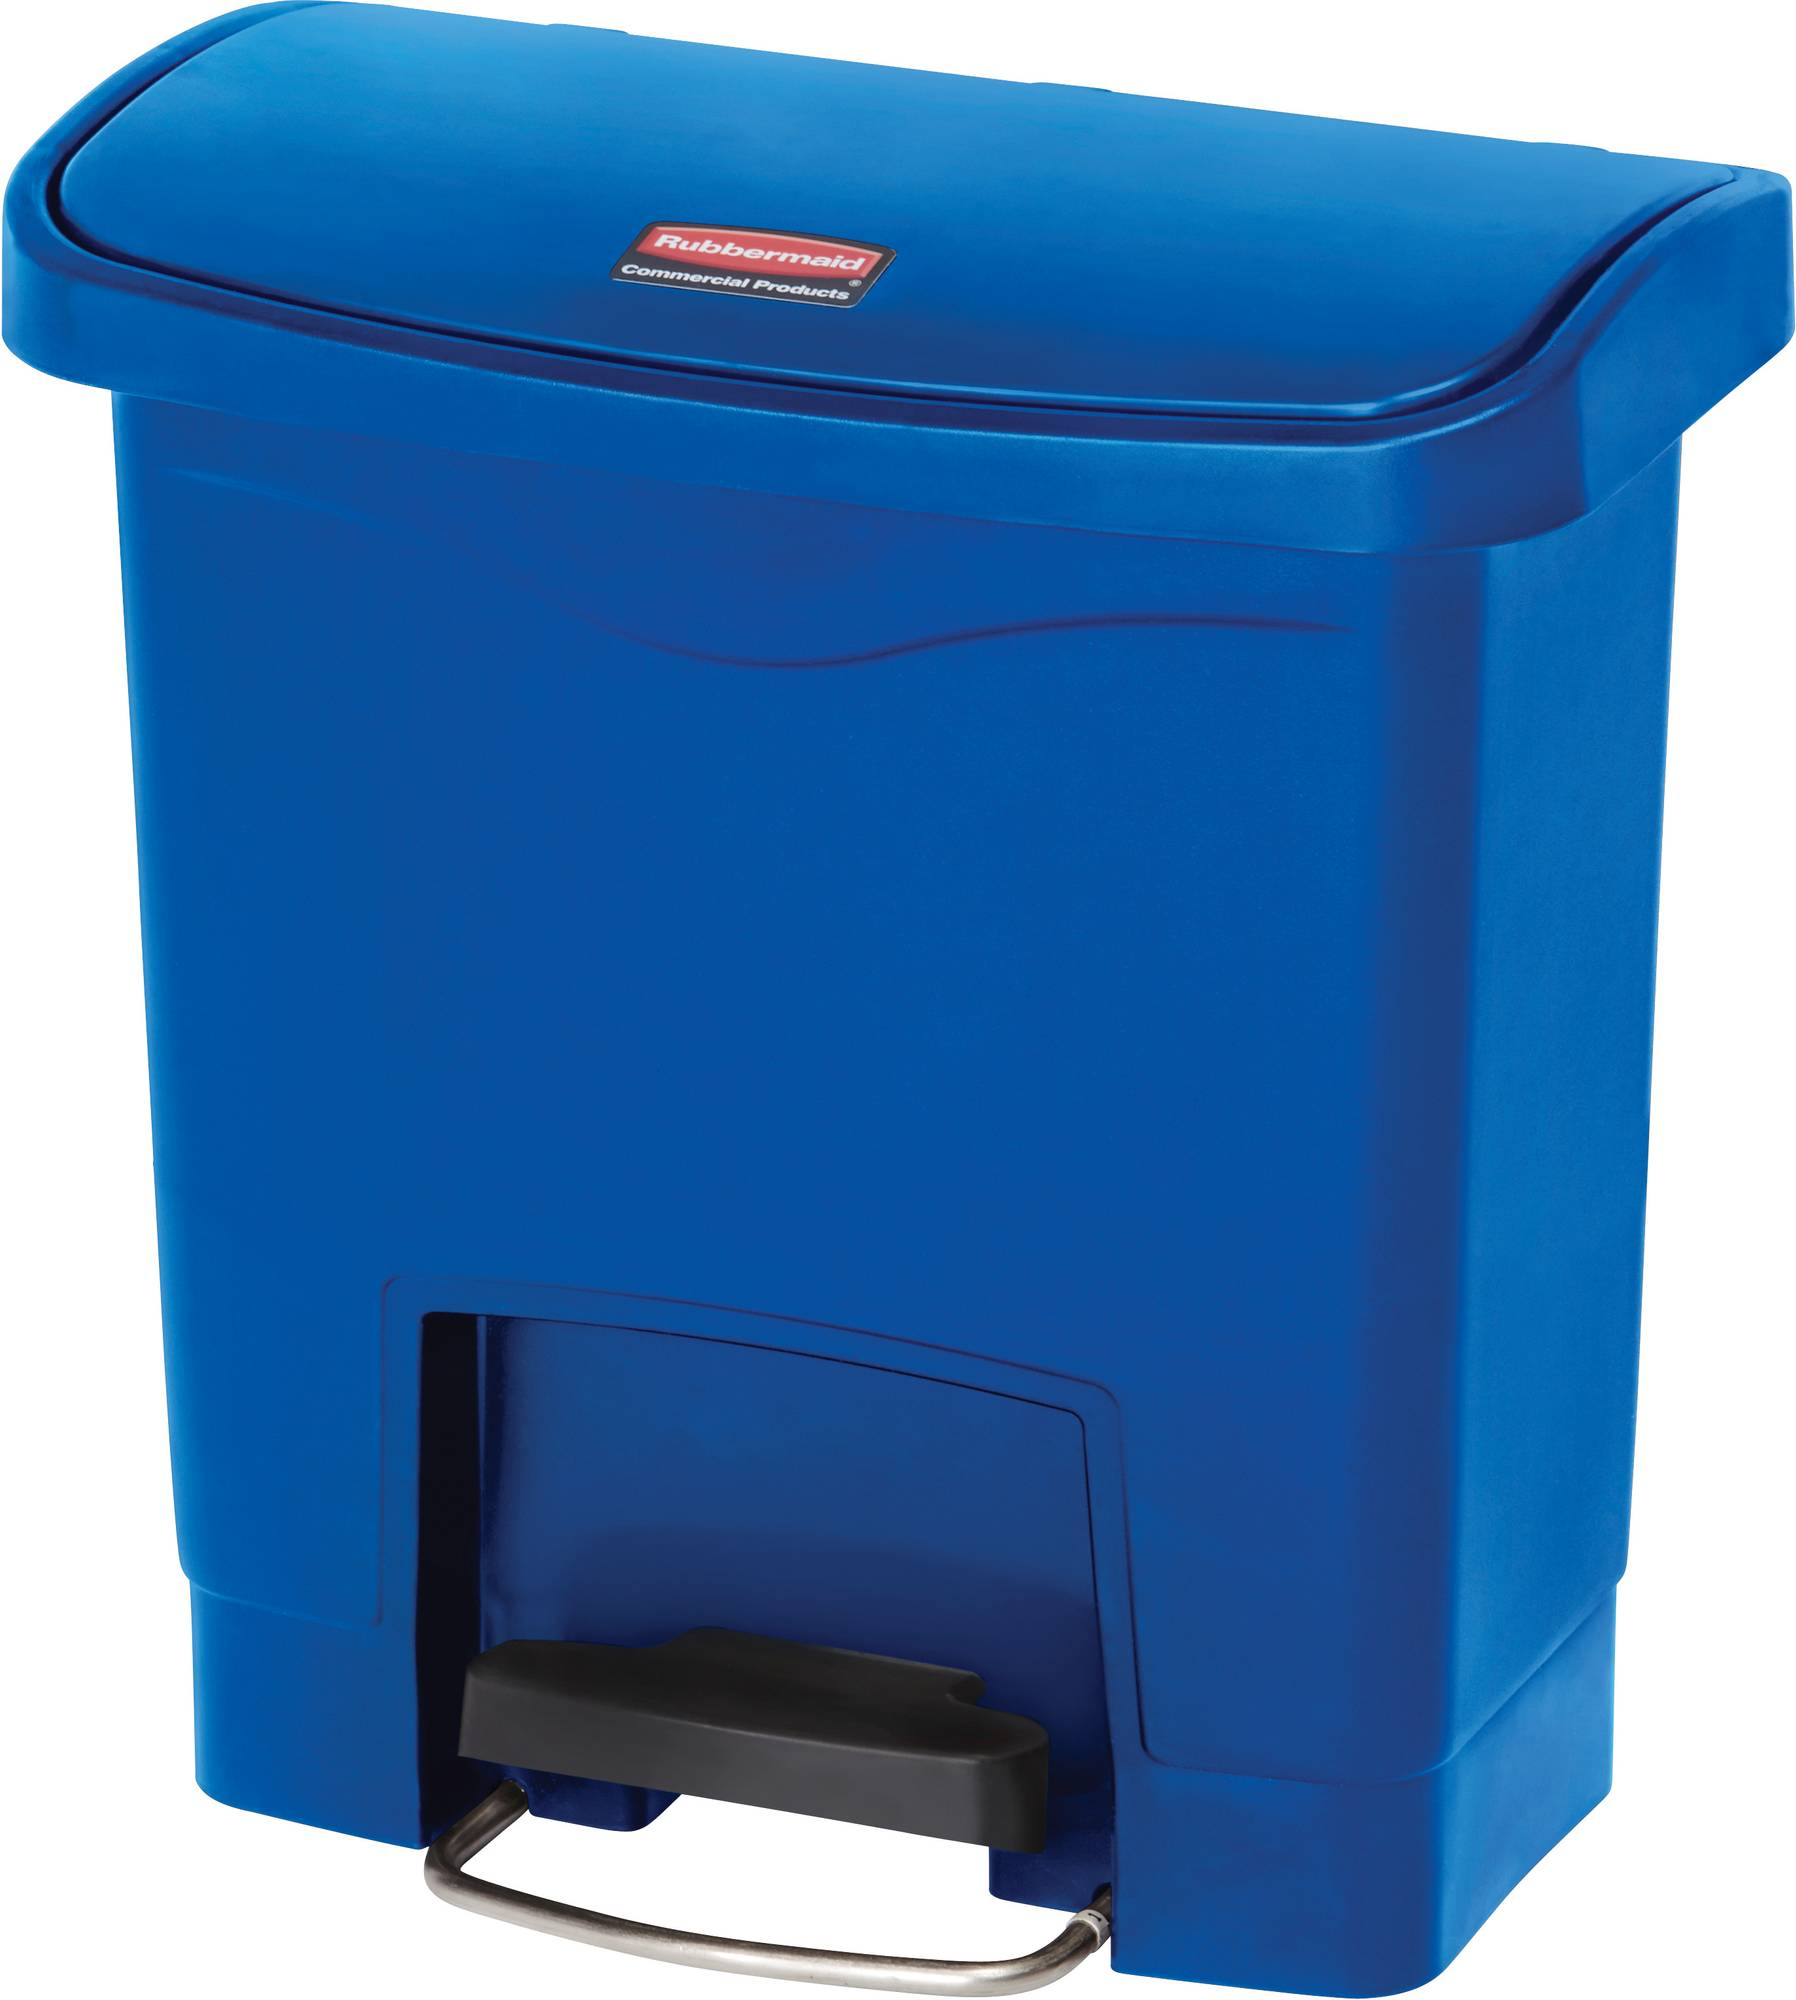 Rubbermaid Slim Jim Step On Container, Front Step mit 15 Liter Füllmenge in Blau